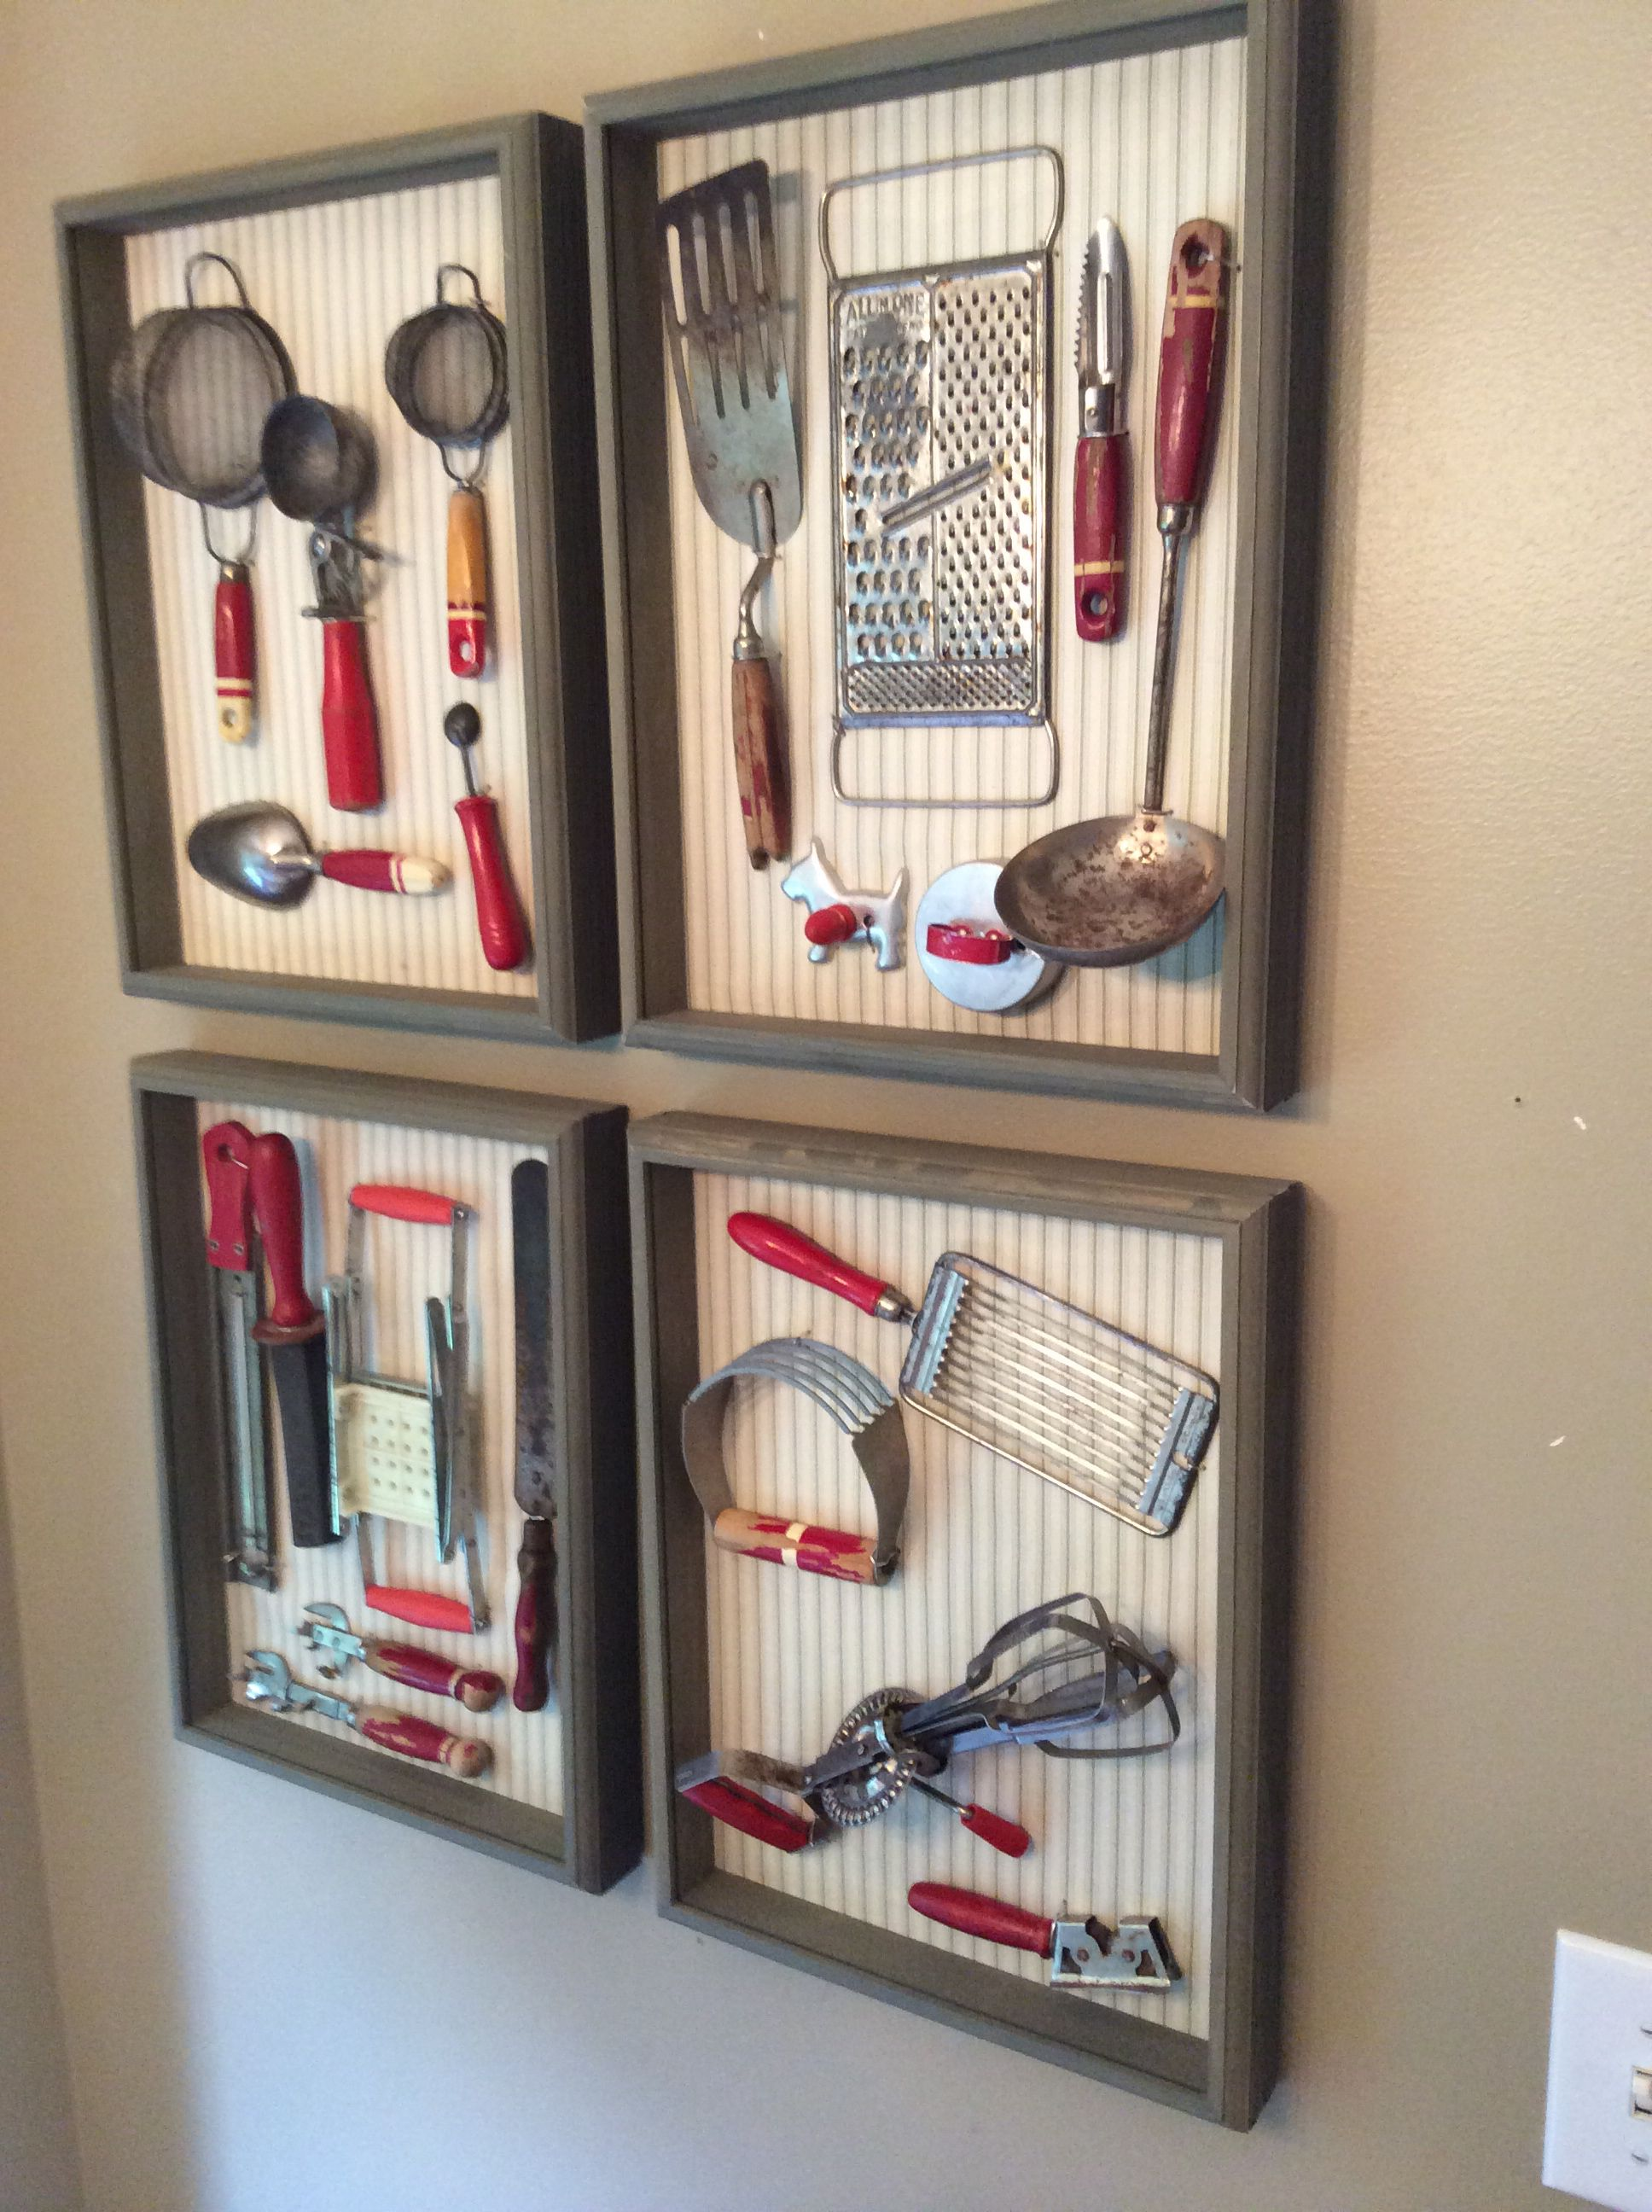 Vintage kitchen gadgets - Vintage Kitchen Utensils Displayed In A Shadow Box I Took The Glass Out Of The